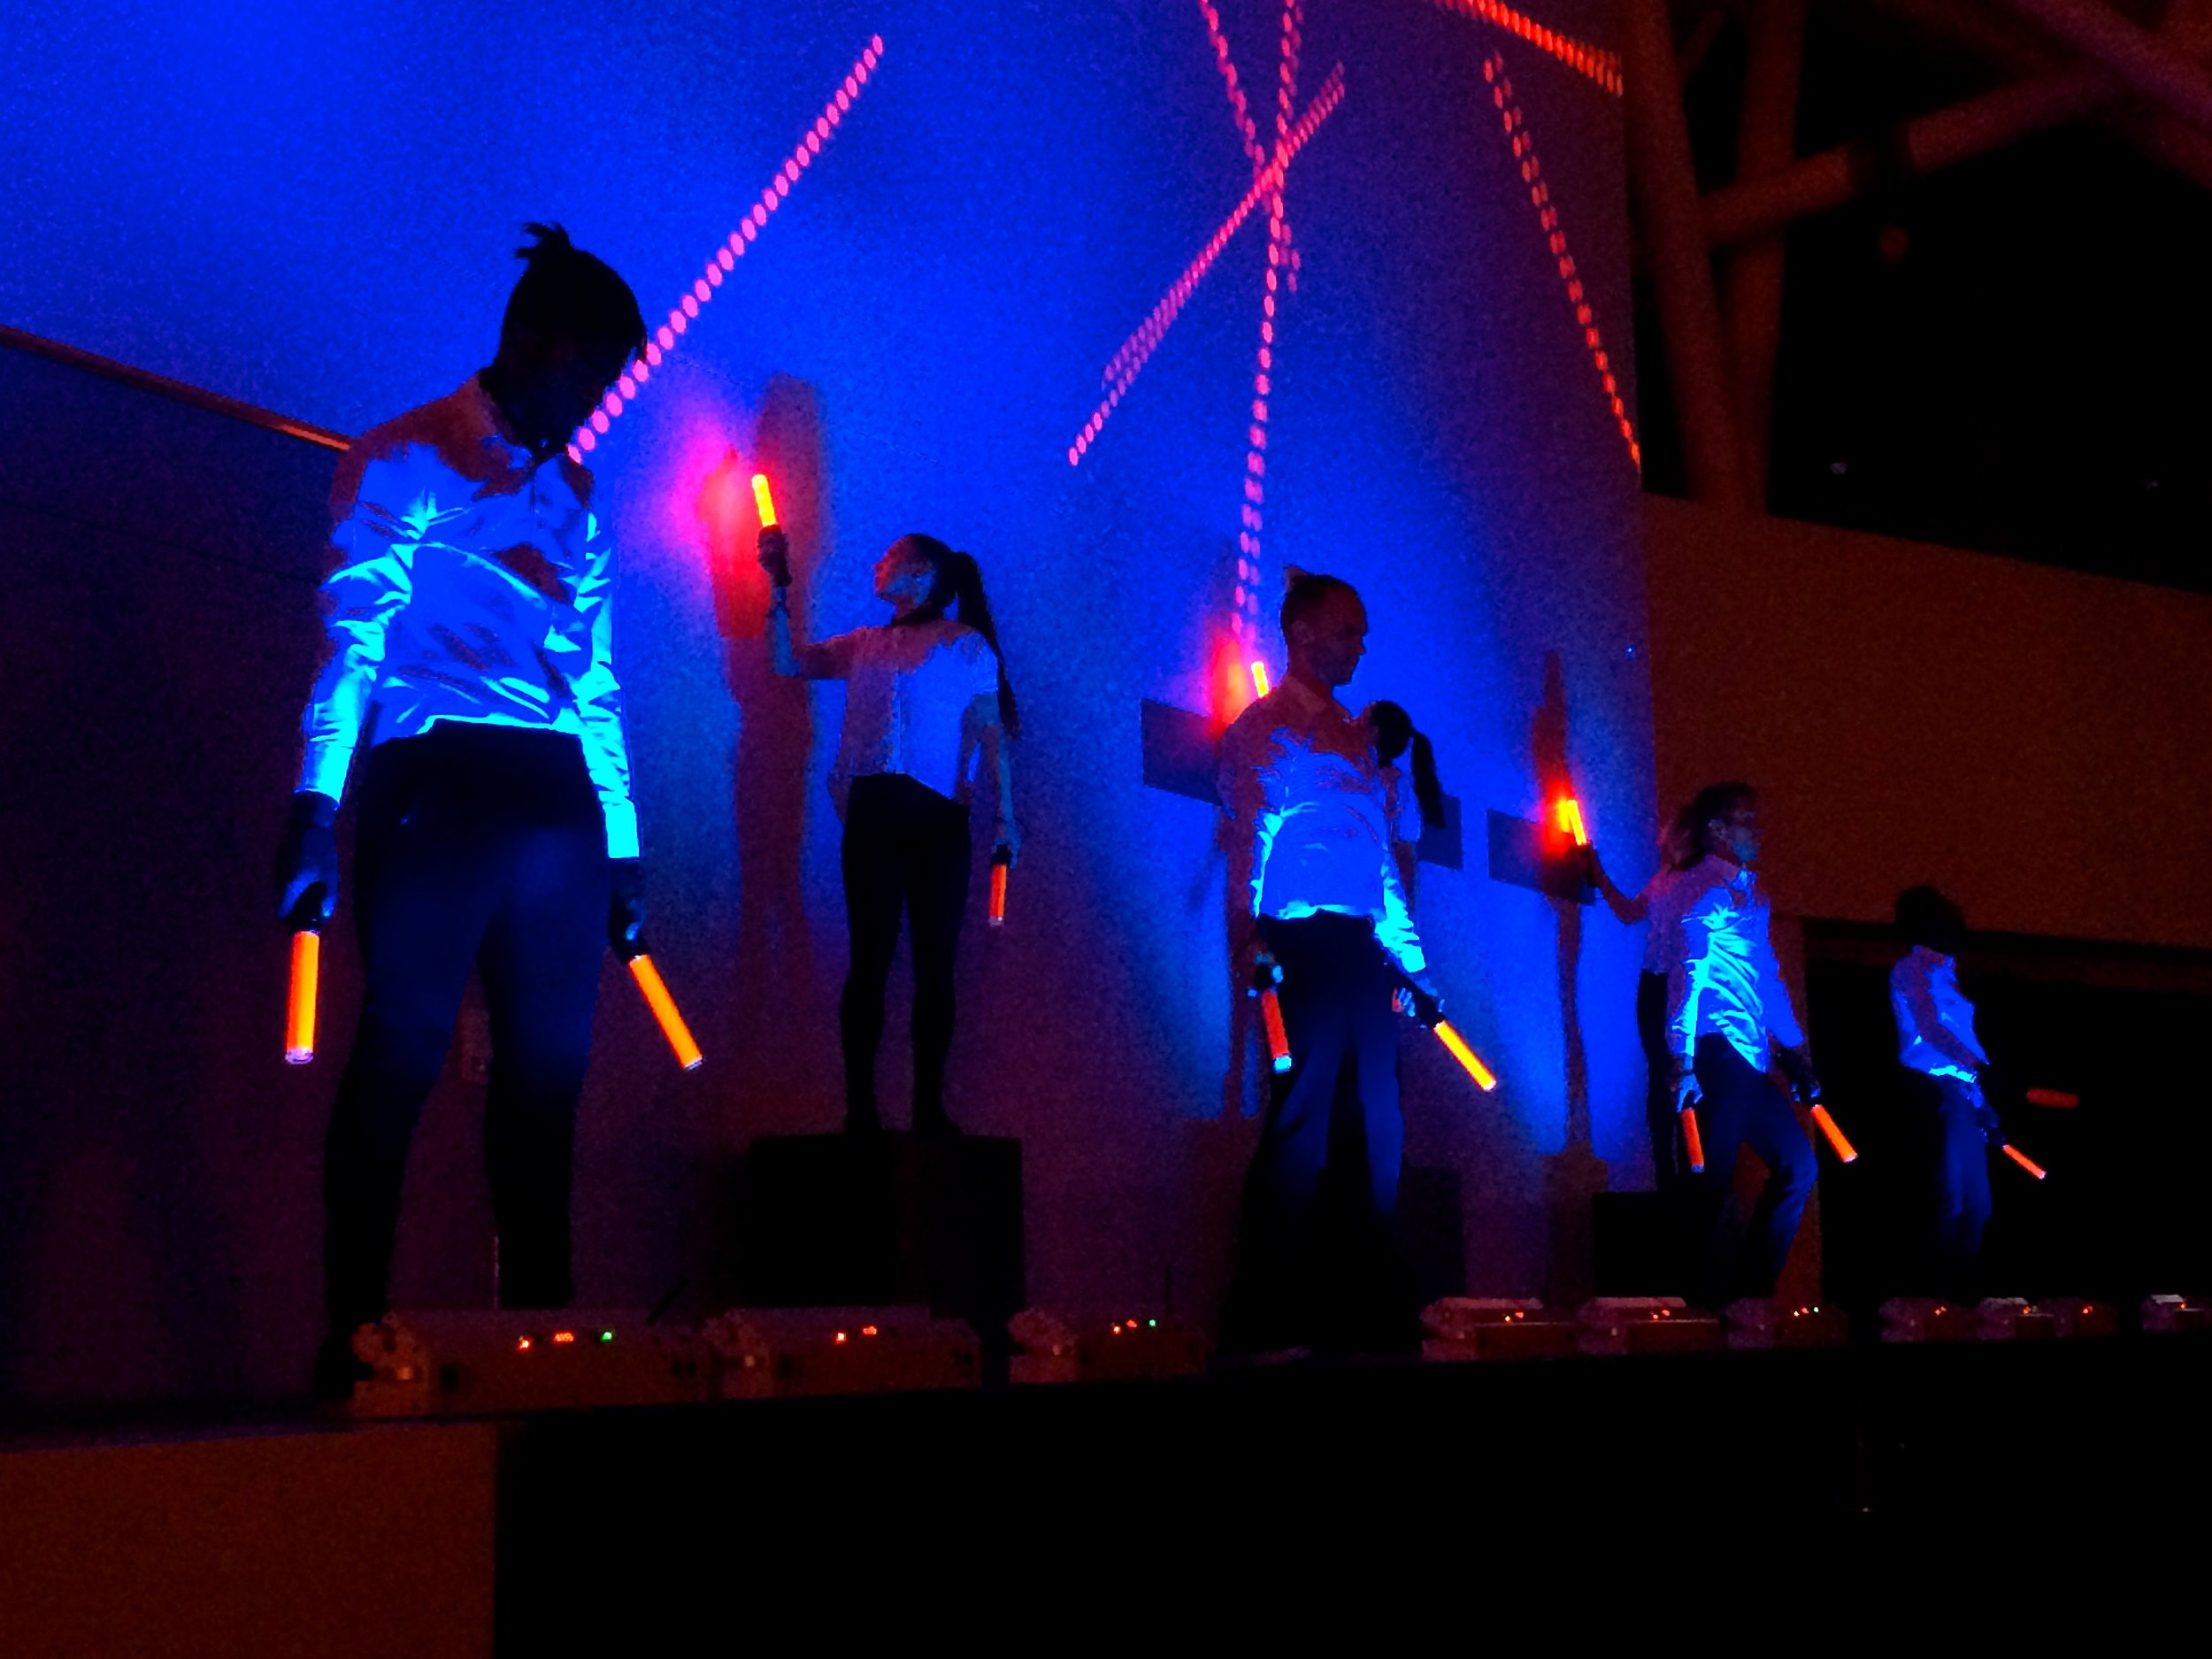 Dancers interacting with music, lights, & projections in an airport controller inspired Opening ...